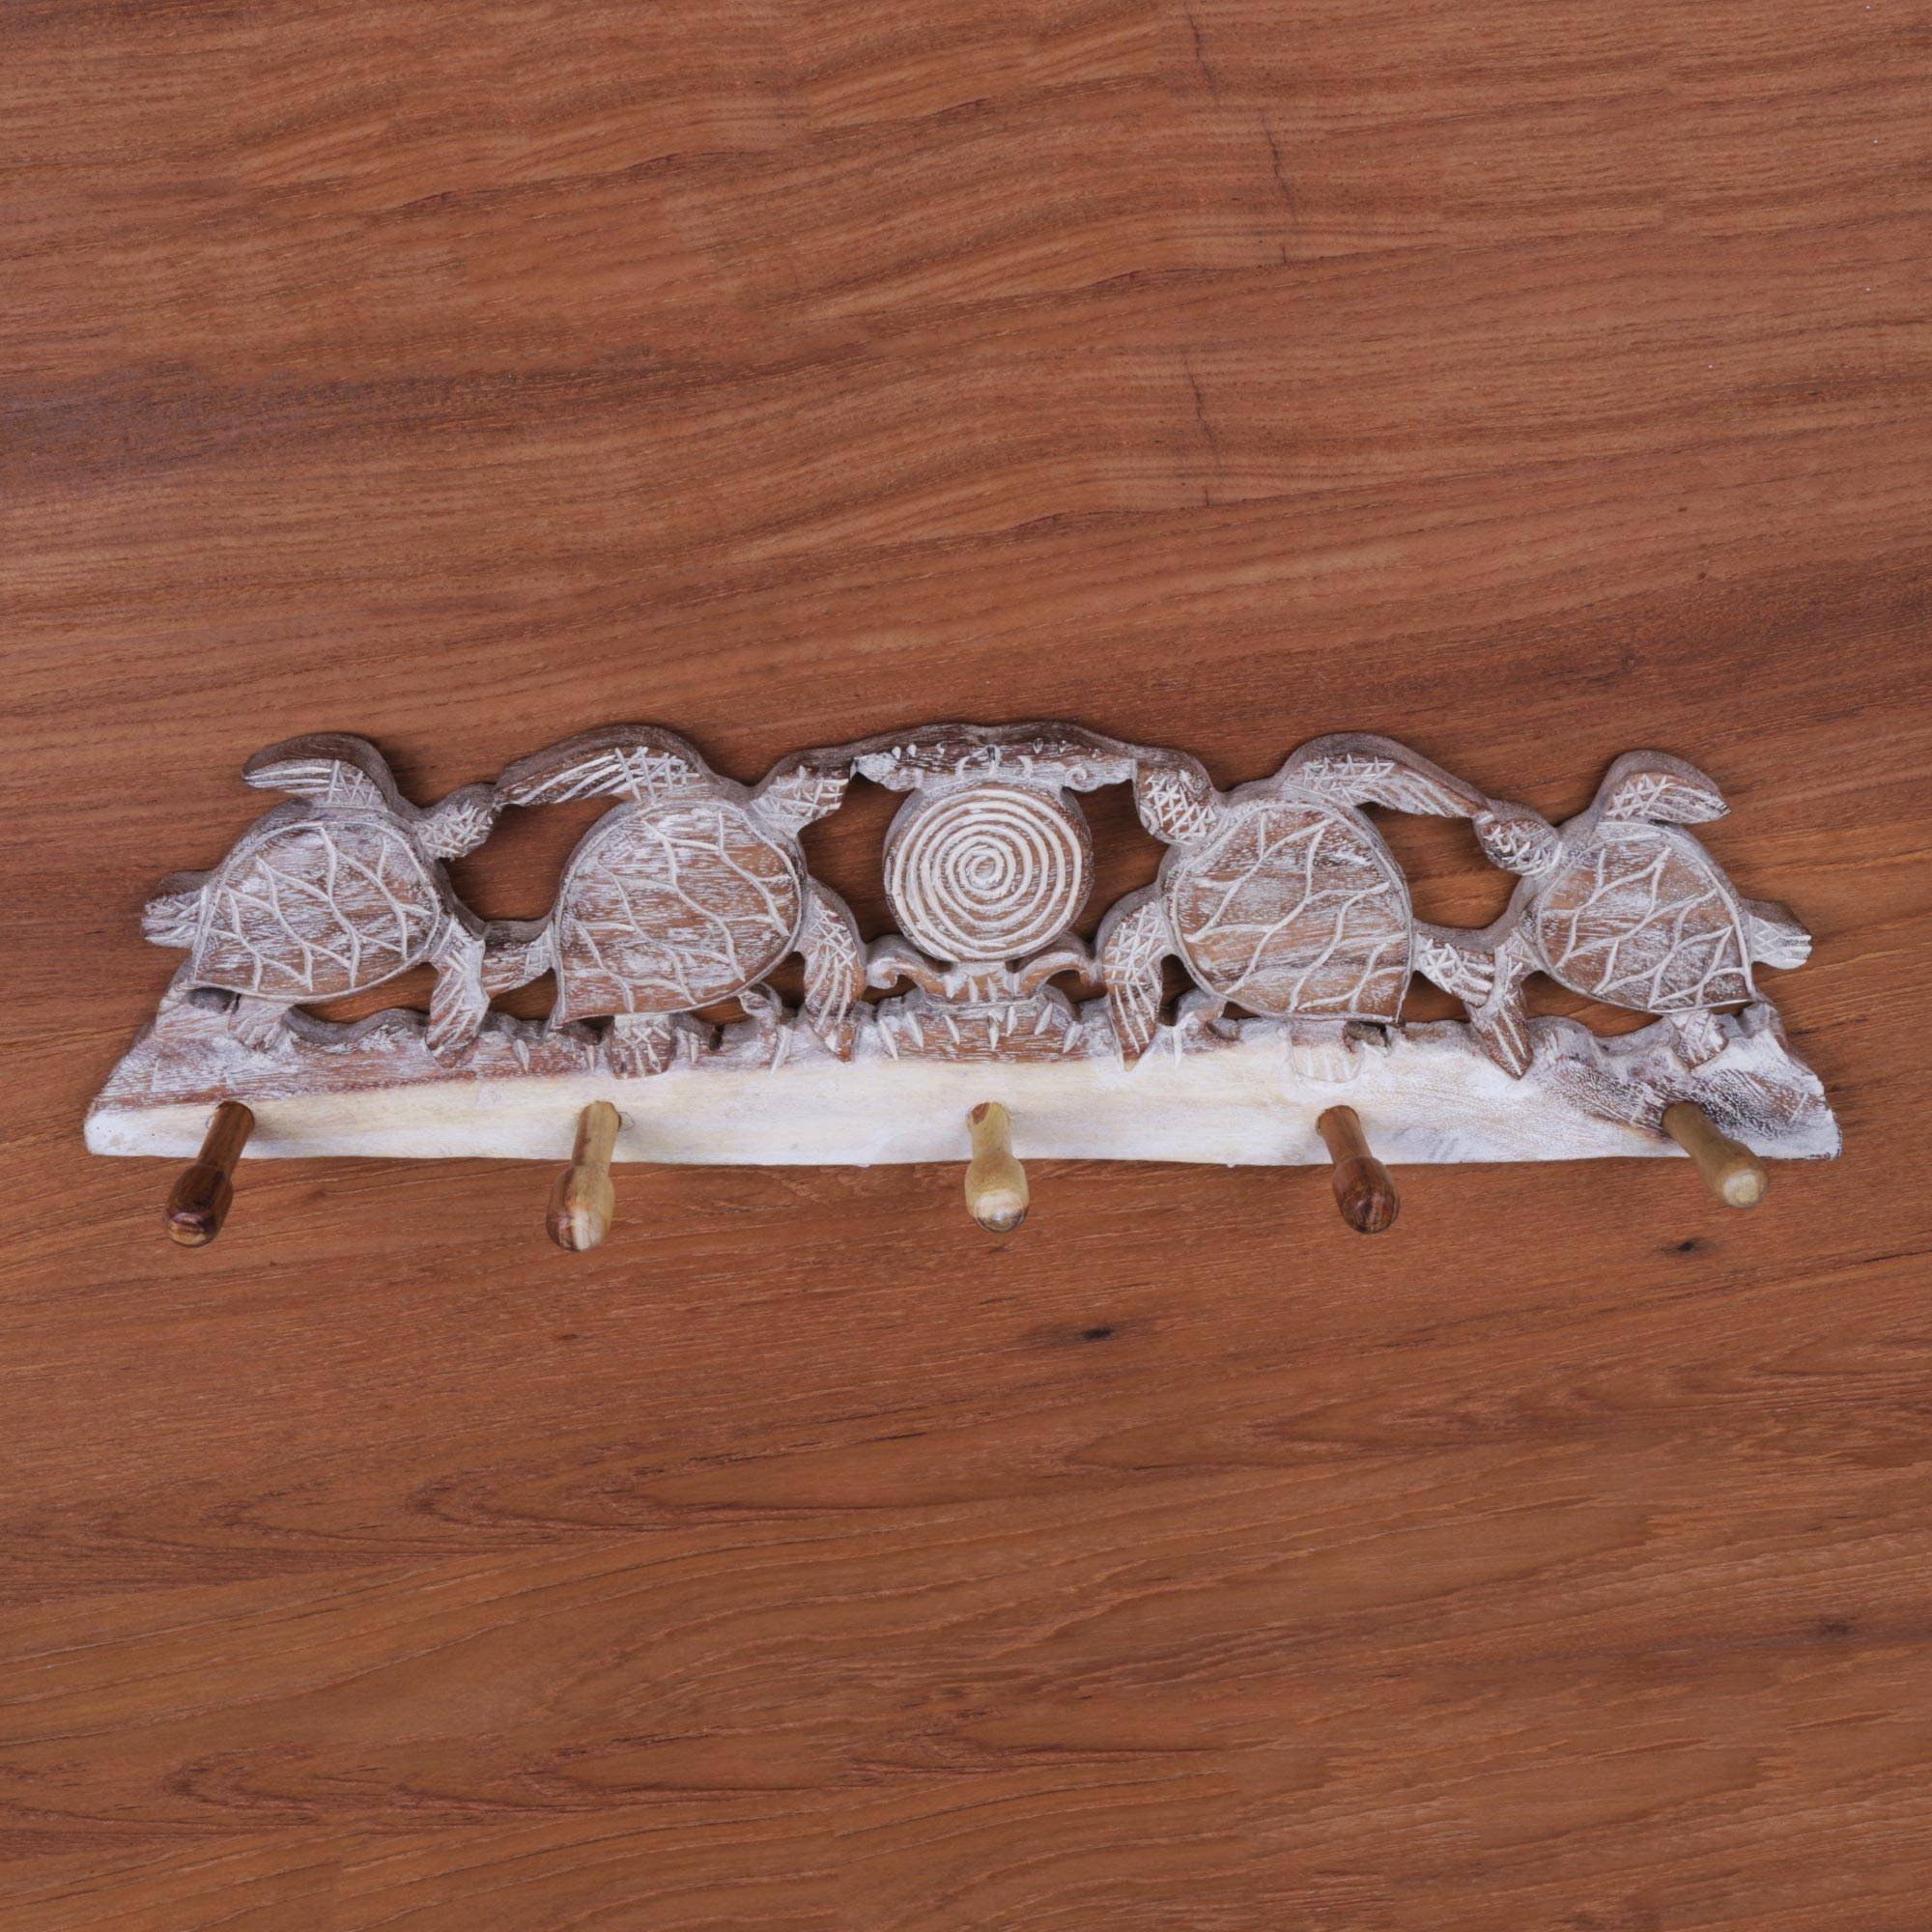 NOVICA Animal Themed Wood Wall Mounted Coat Hanger, Brown and White, Turtle Bay Beach' by NOVICA (Image #2)